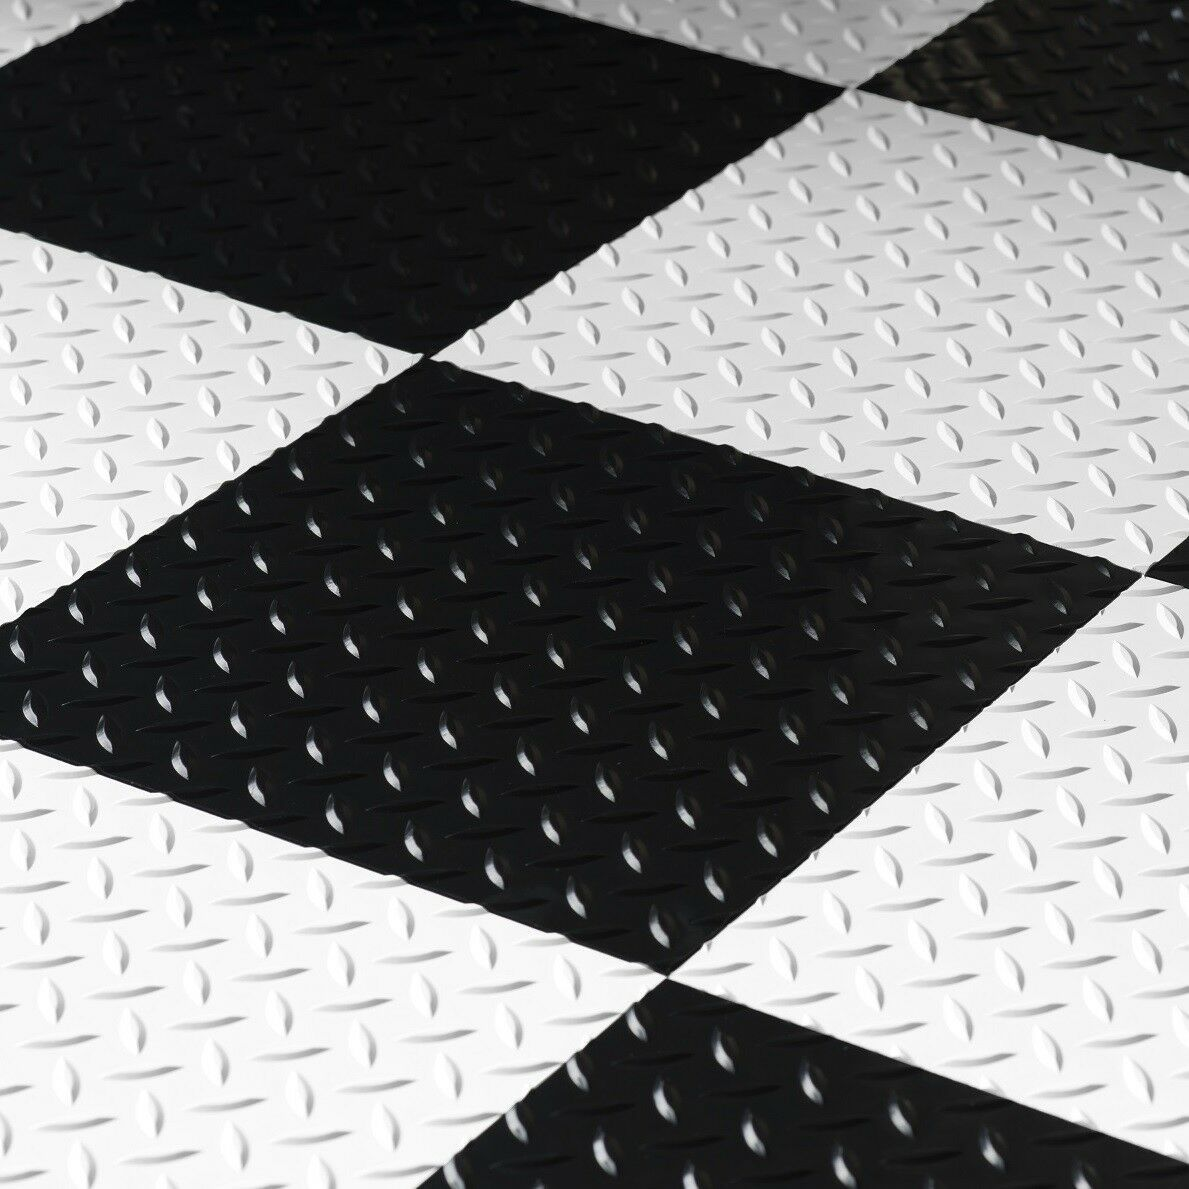 Details About Garage Flooring Peel And Stick Tiles Best Black Basement Vinyl Floor Mats 12x12 Vinyl Floor Mat Vinyl Flooring Peel And Stick Tile